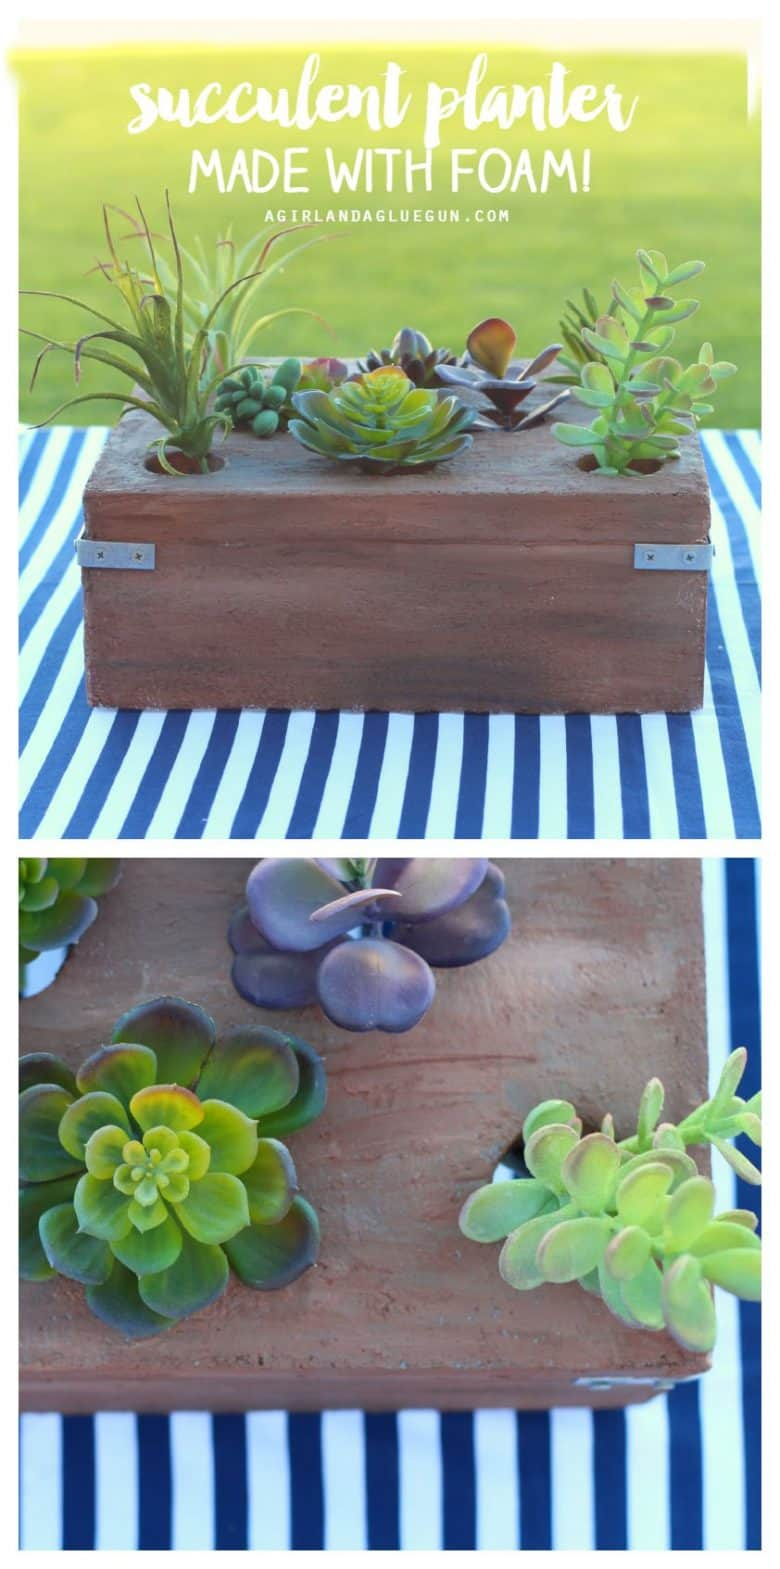 succulent-planter-made-with-foam